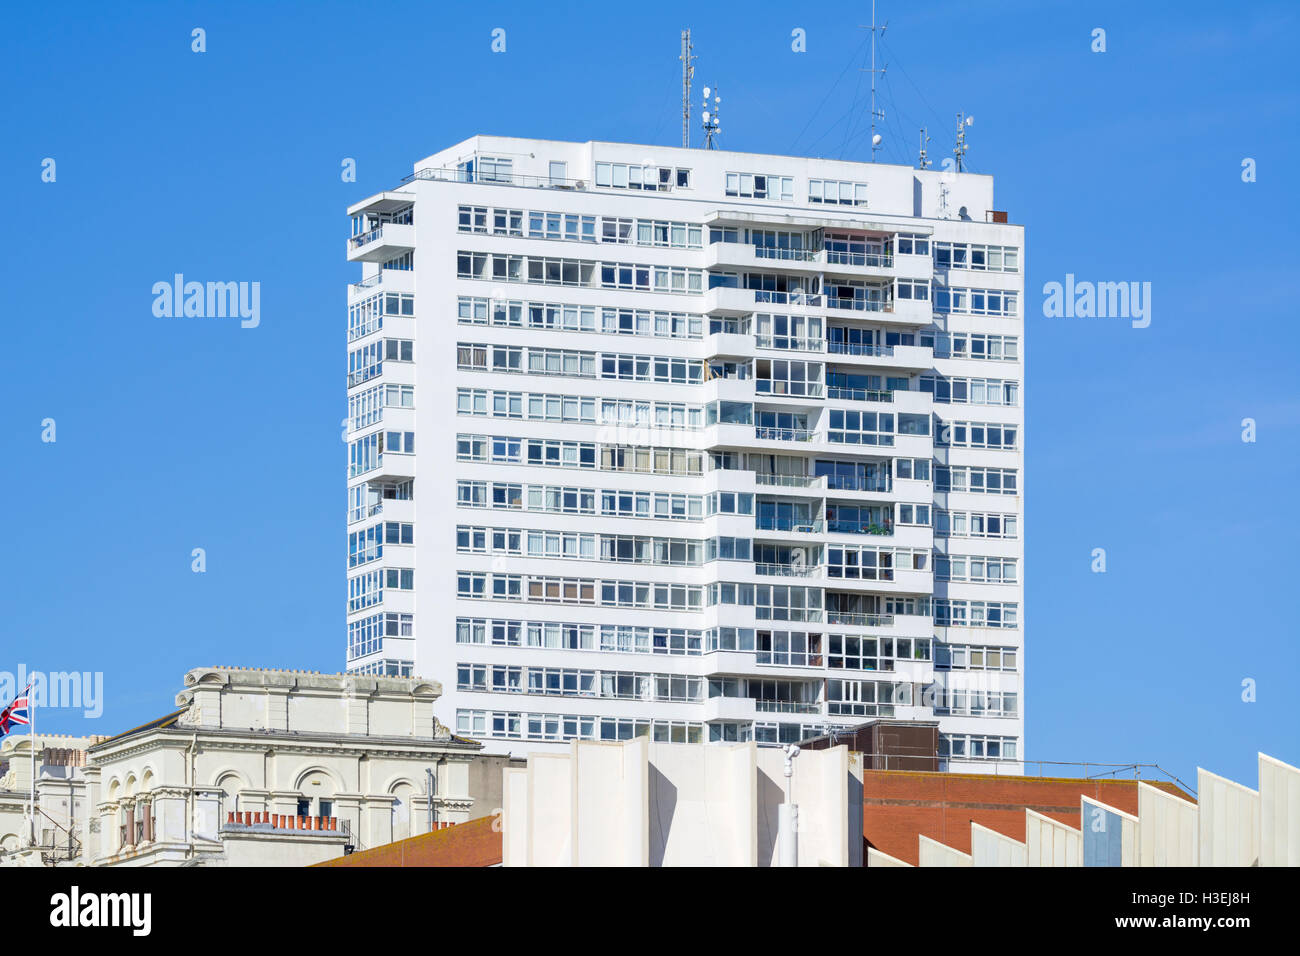 High rise office building block with housing in foreground in Brighton, East Sussex, England, UK. - Stock Image